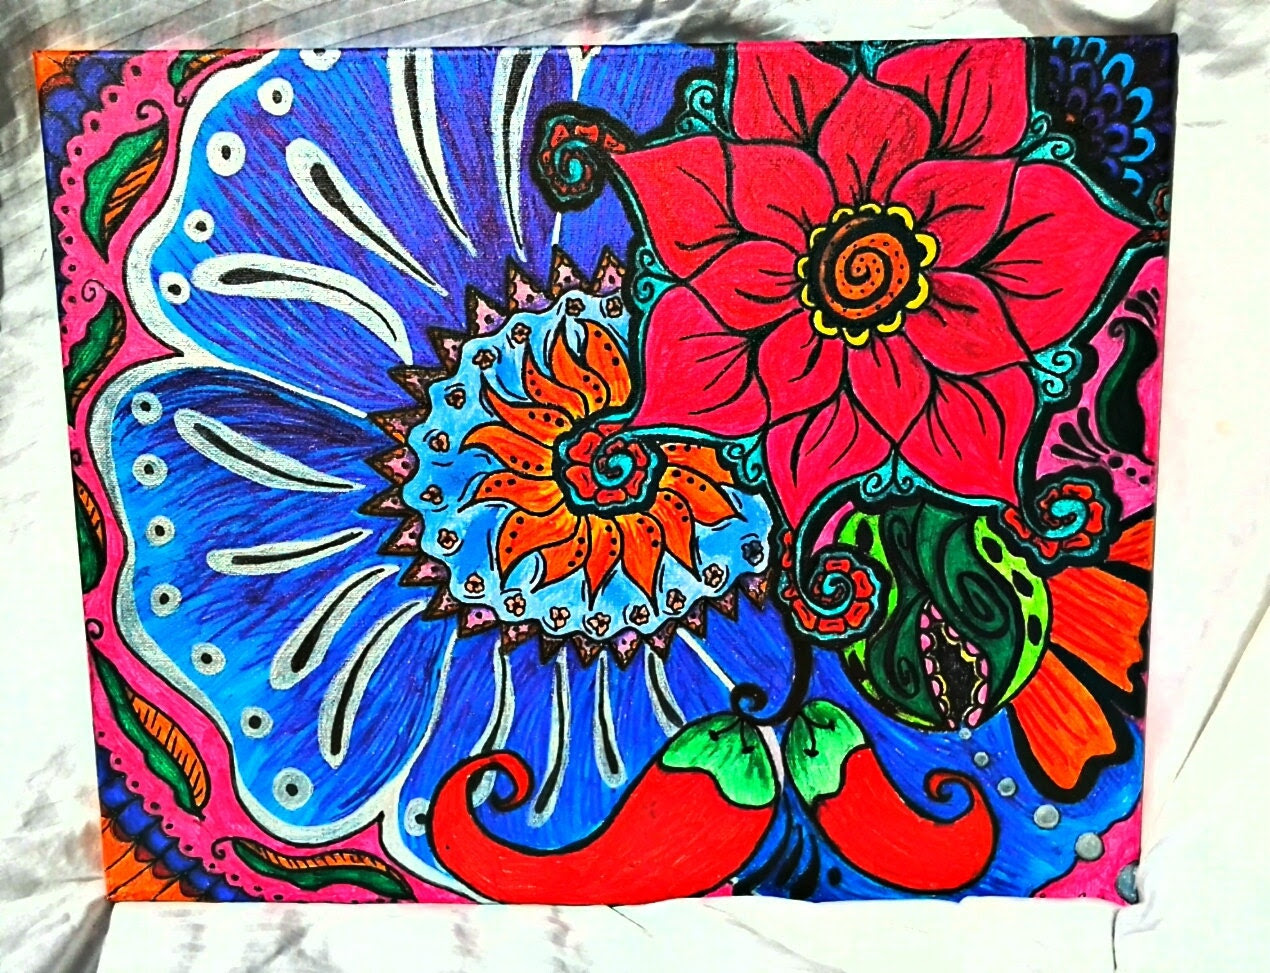 zentangle Floral painting with chili peppers very boho.